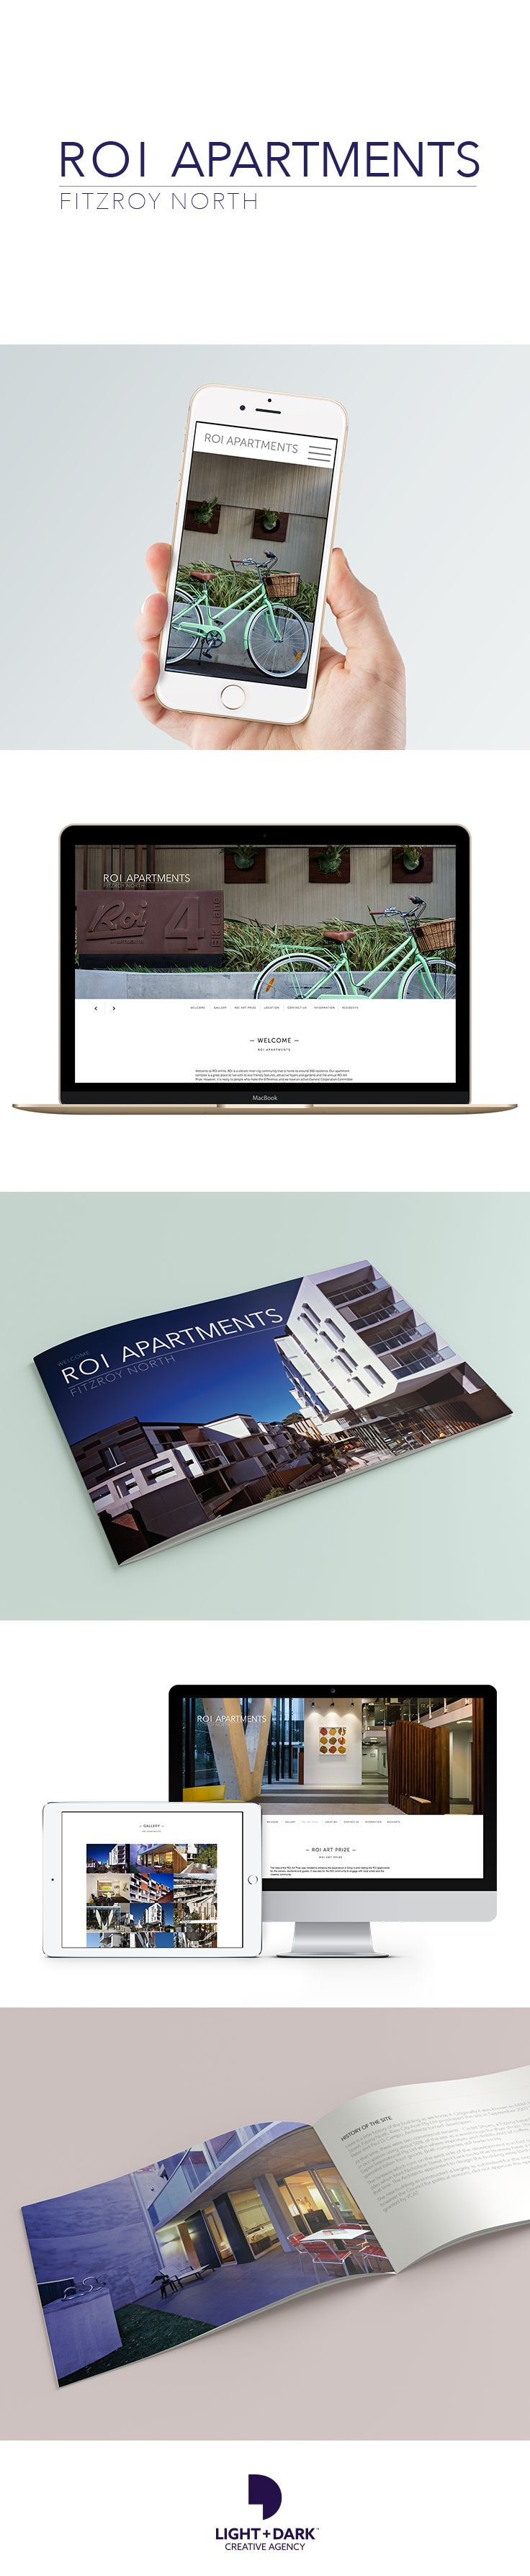 Booklet & Website Design: ROI Apartments asked us to come up with an informative and stylish, coffee table style booklet.  This booklet showcases the buildings apartments with amazing photography from construction phase to completion. This year, they came back to us again to design a mobile friendly website with information about the apartments, the ROI Art Prize and show-casing more stunning photography (with our buddy Robby, from Robby Edge Photography). www.roiapartments.com.au